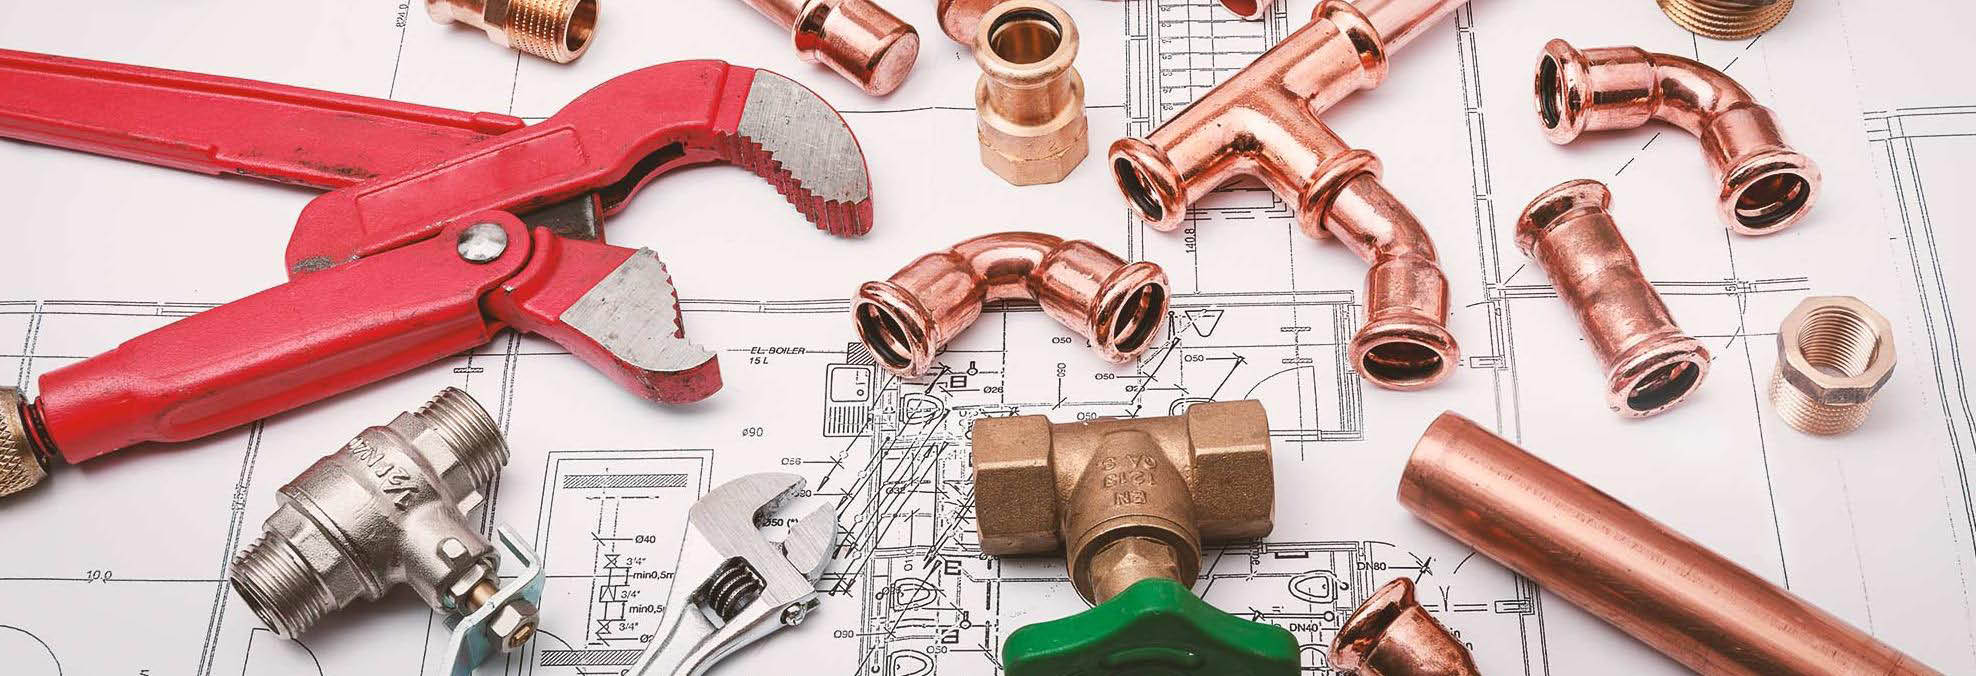 halpin plumbing services cincinnati ohio pipes tools